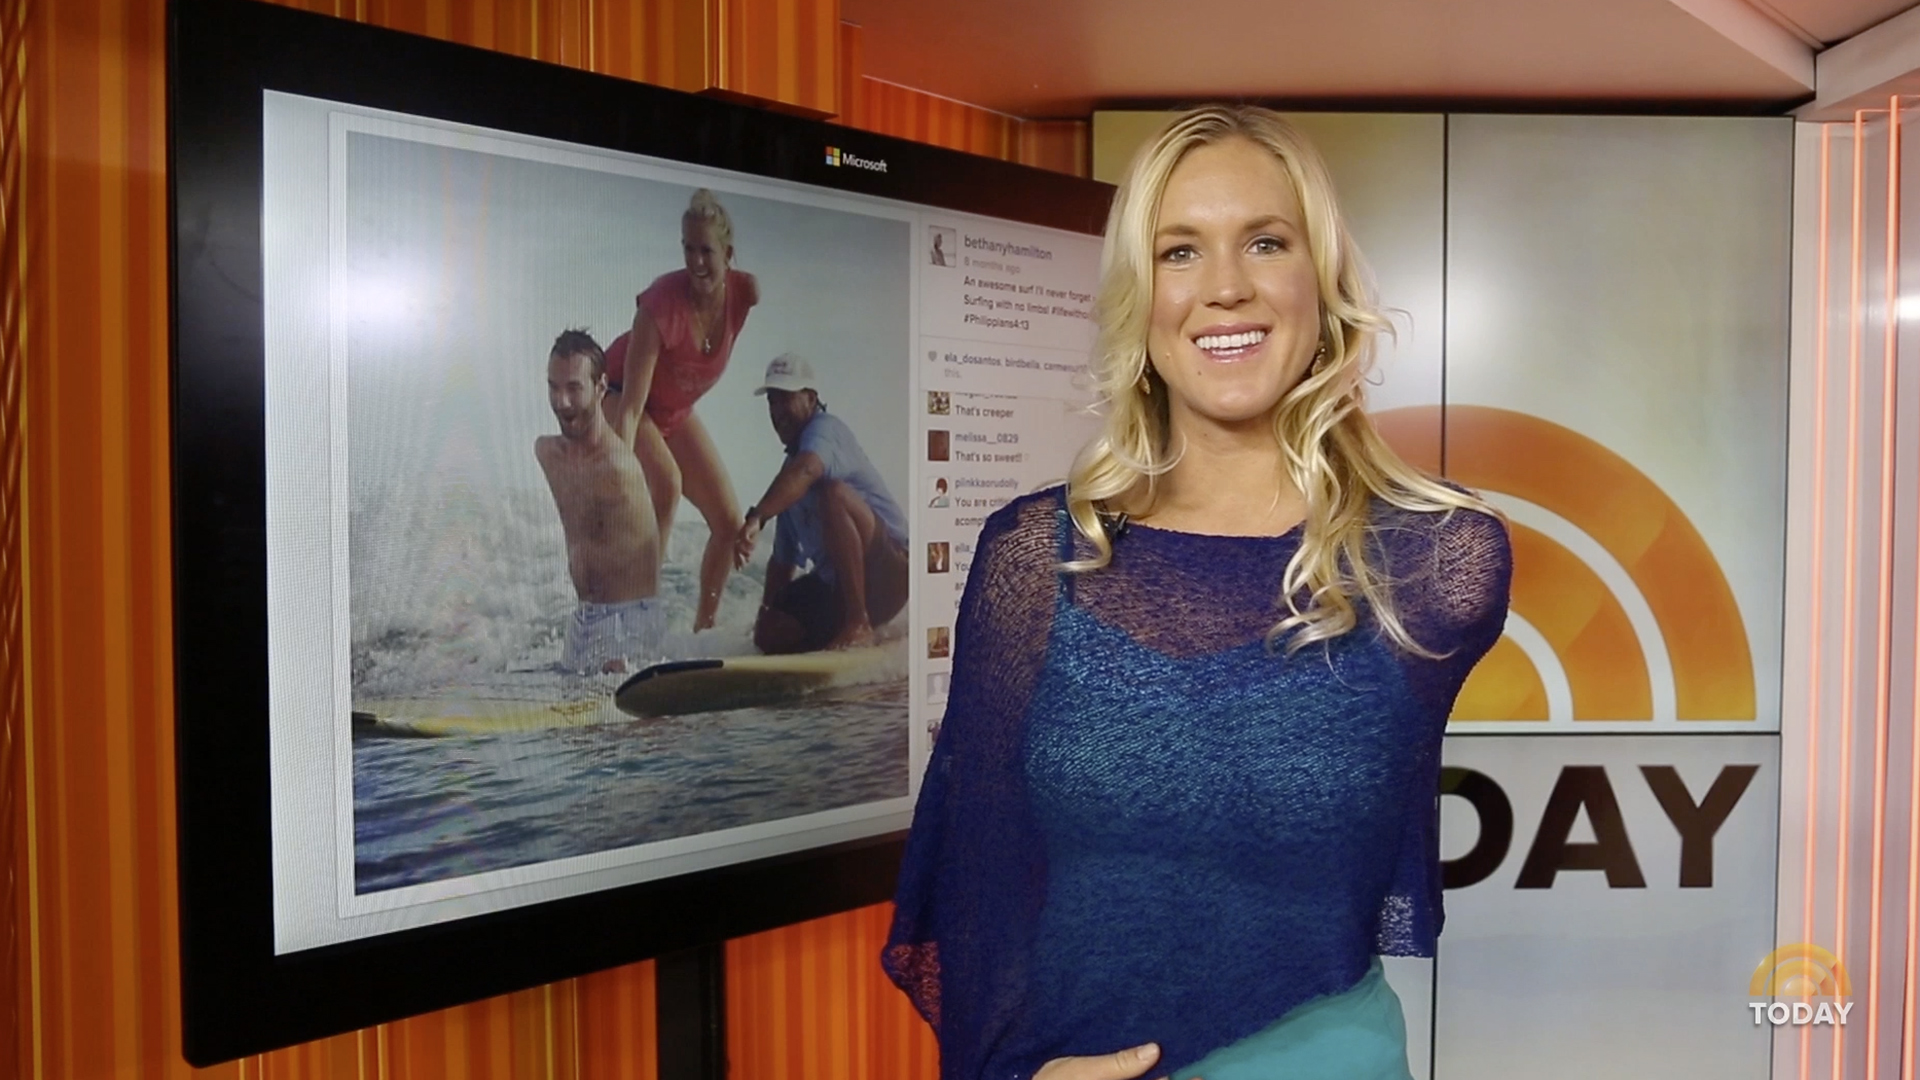 Surfer Bethany Hamilton On Finding Inspiration From Others